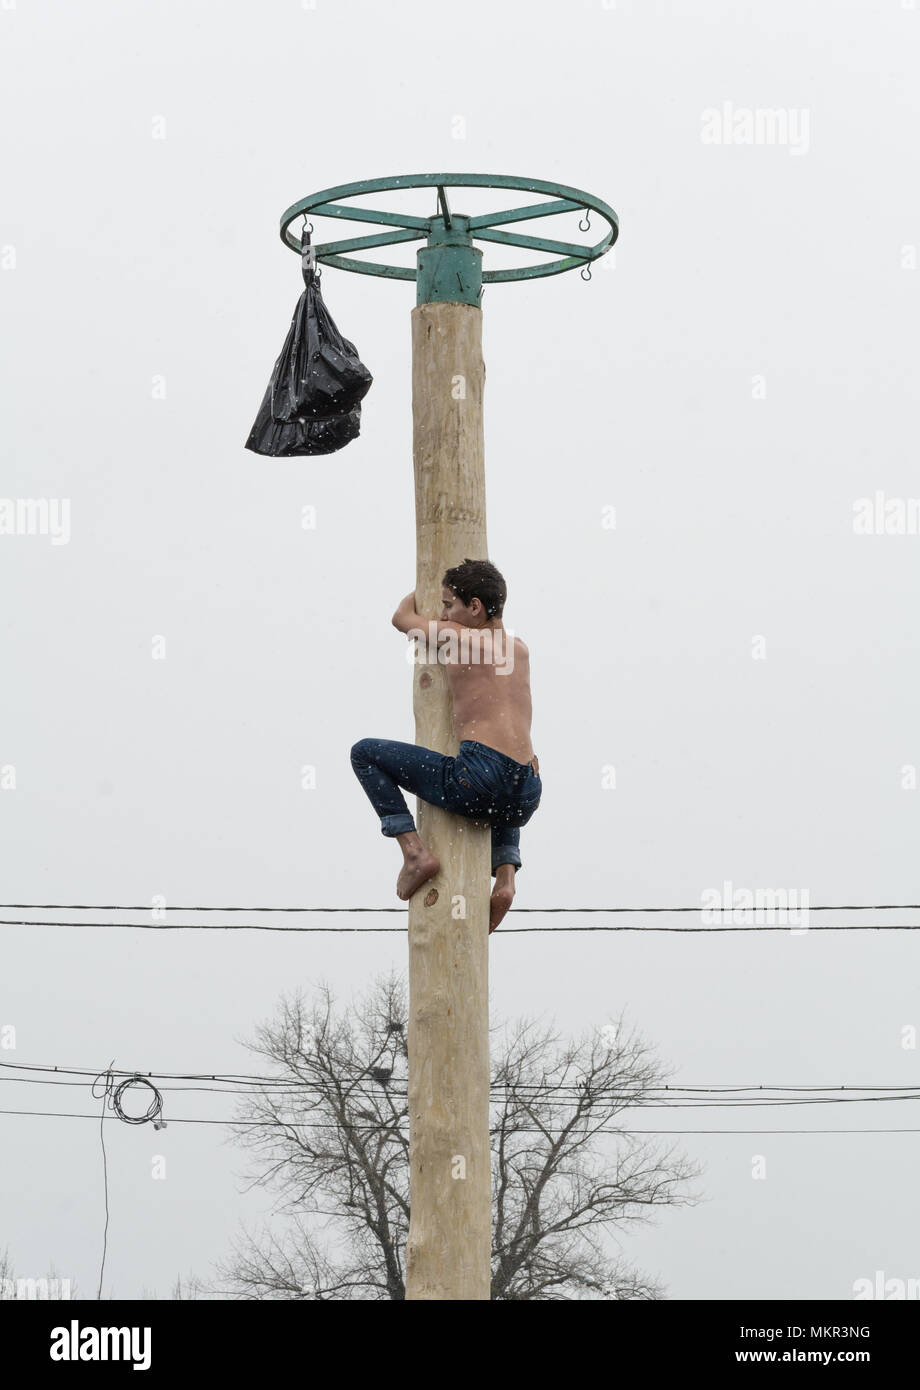 TIRASPOL, MOLDOVA-FEBRUARY 18, 2018: Boy climbing on a wooden pole for the prize. Slavonic folk pagan holiday Maslenitsa (Shrovetide) - a symbolic mee Stock Photo